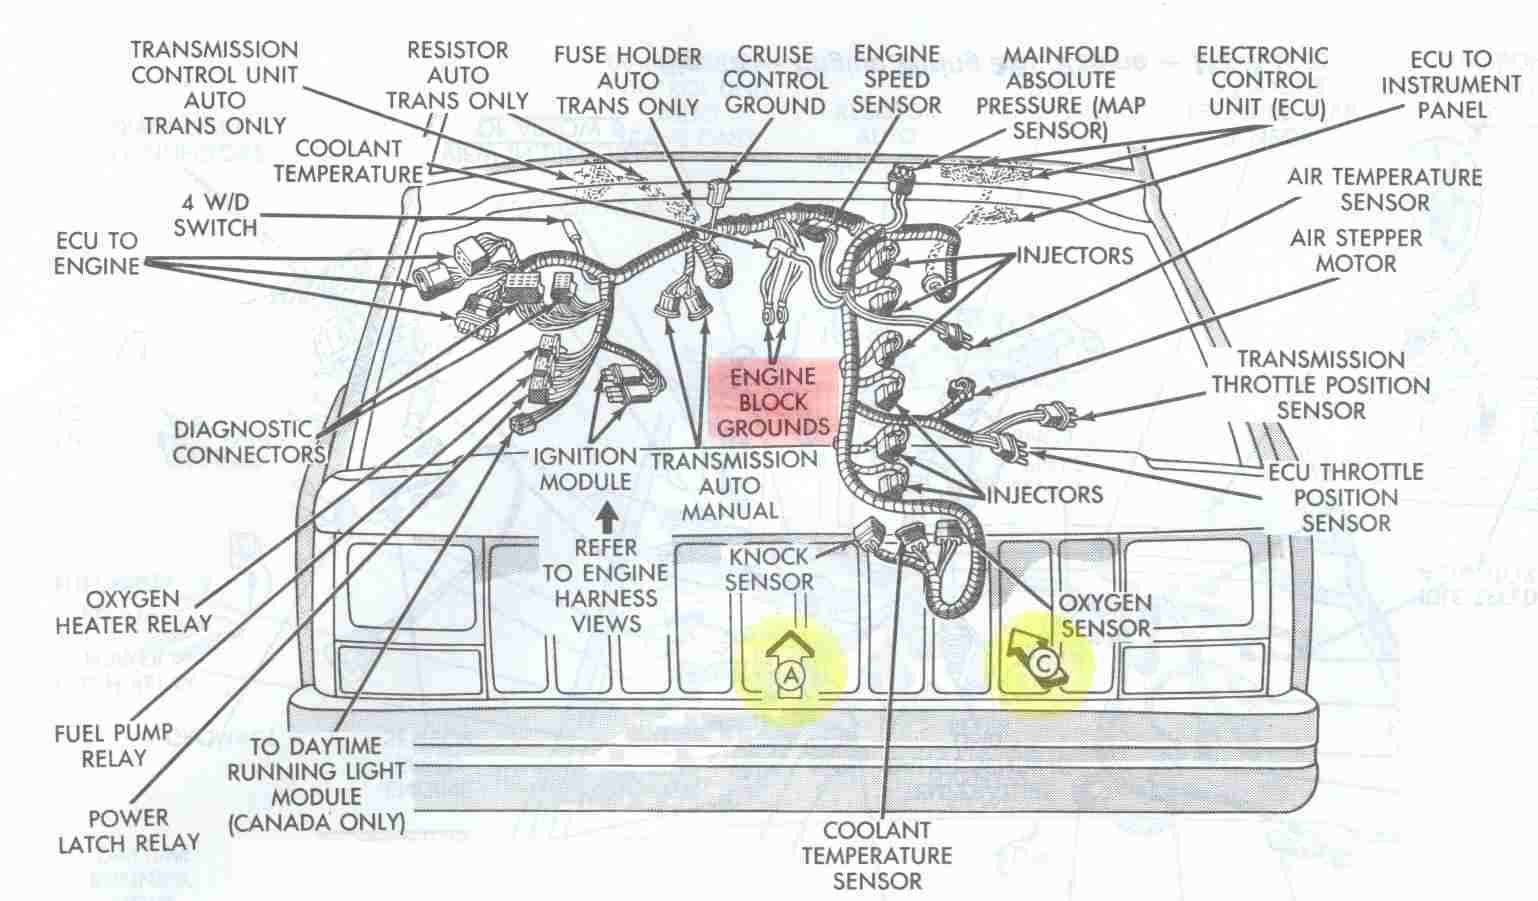 2005 jeep grand cherokee engine wiring for injector 2005 jeep grand cherokee engine wiring for injector ... 2005 jeep grand cherokee window wiring diagram